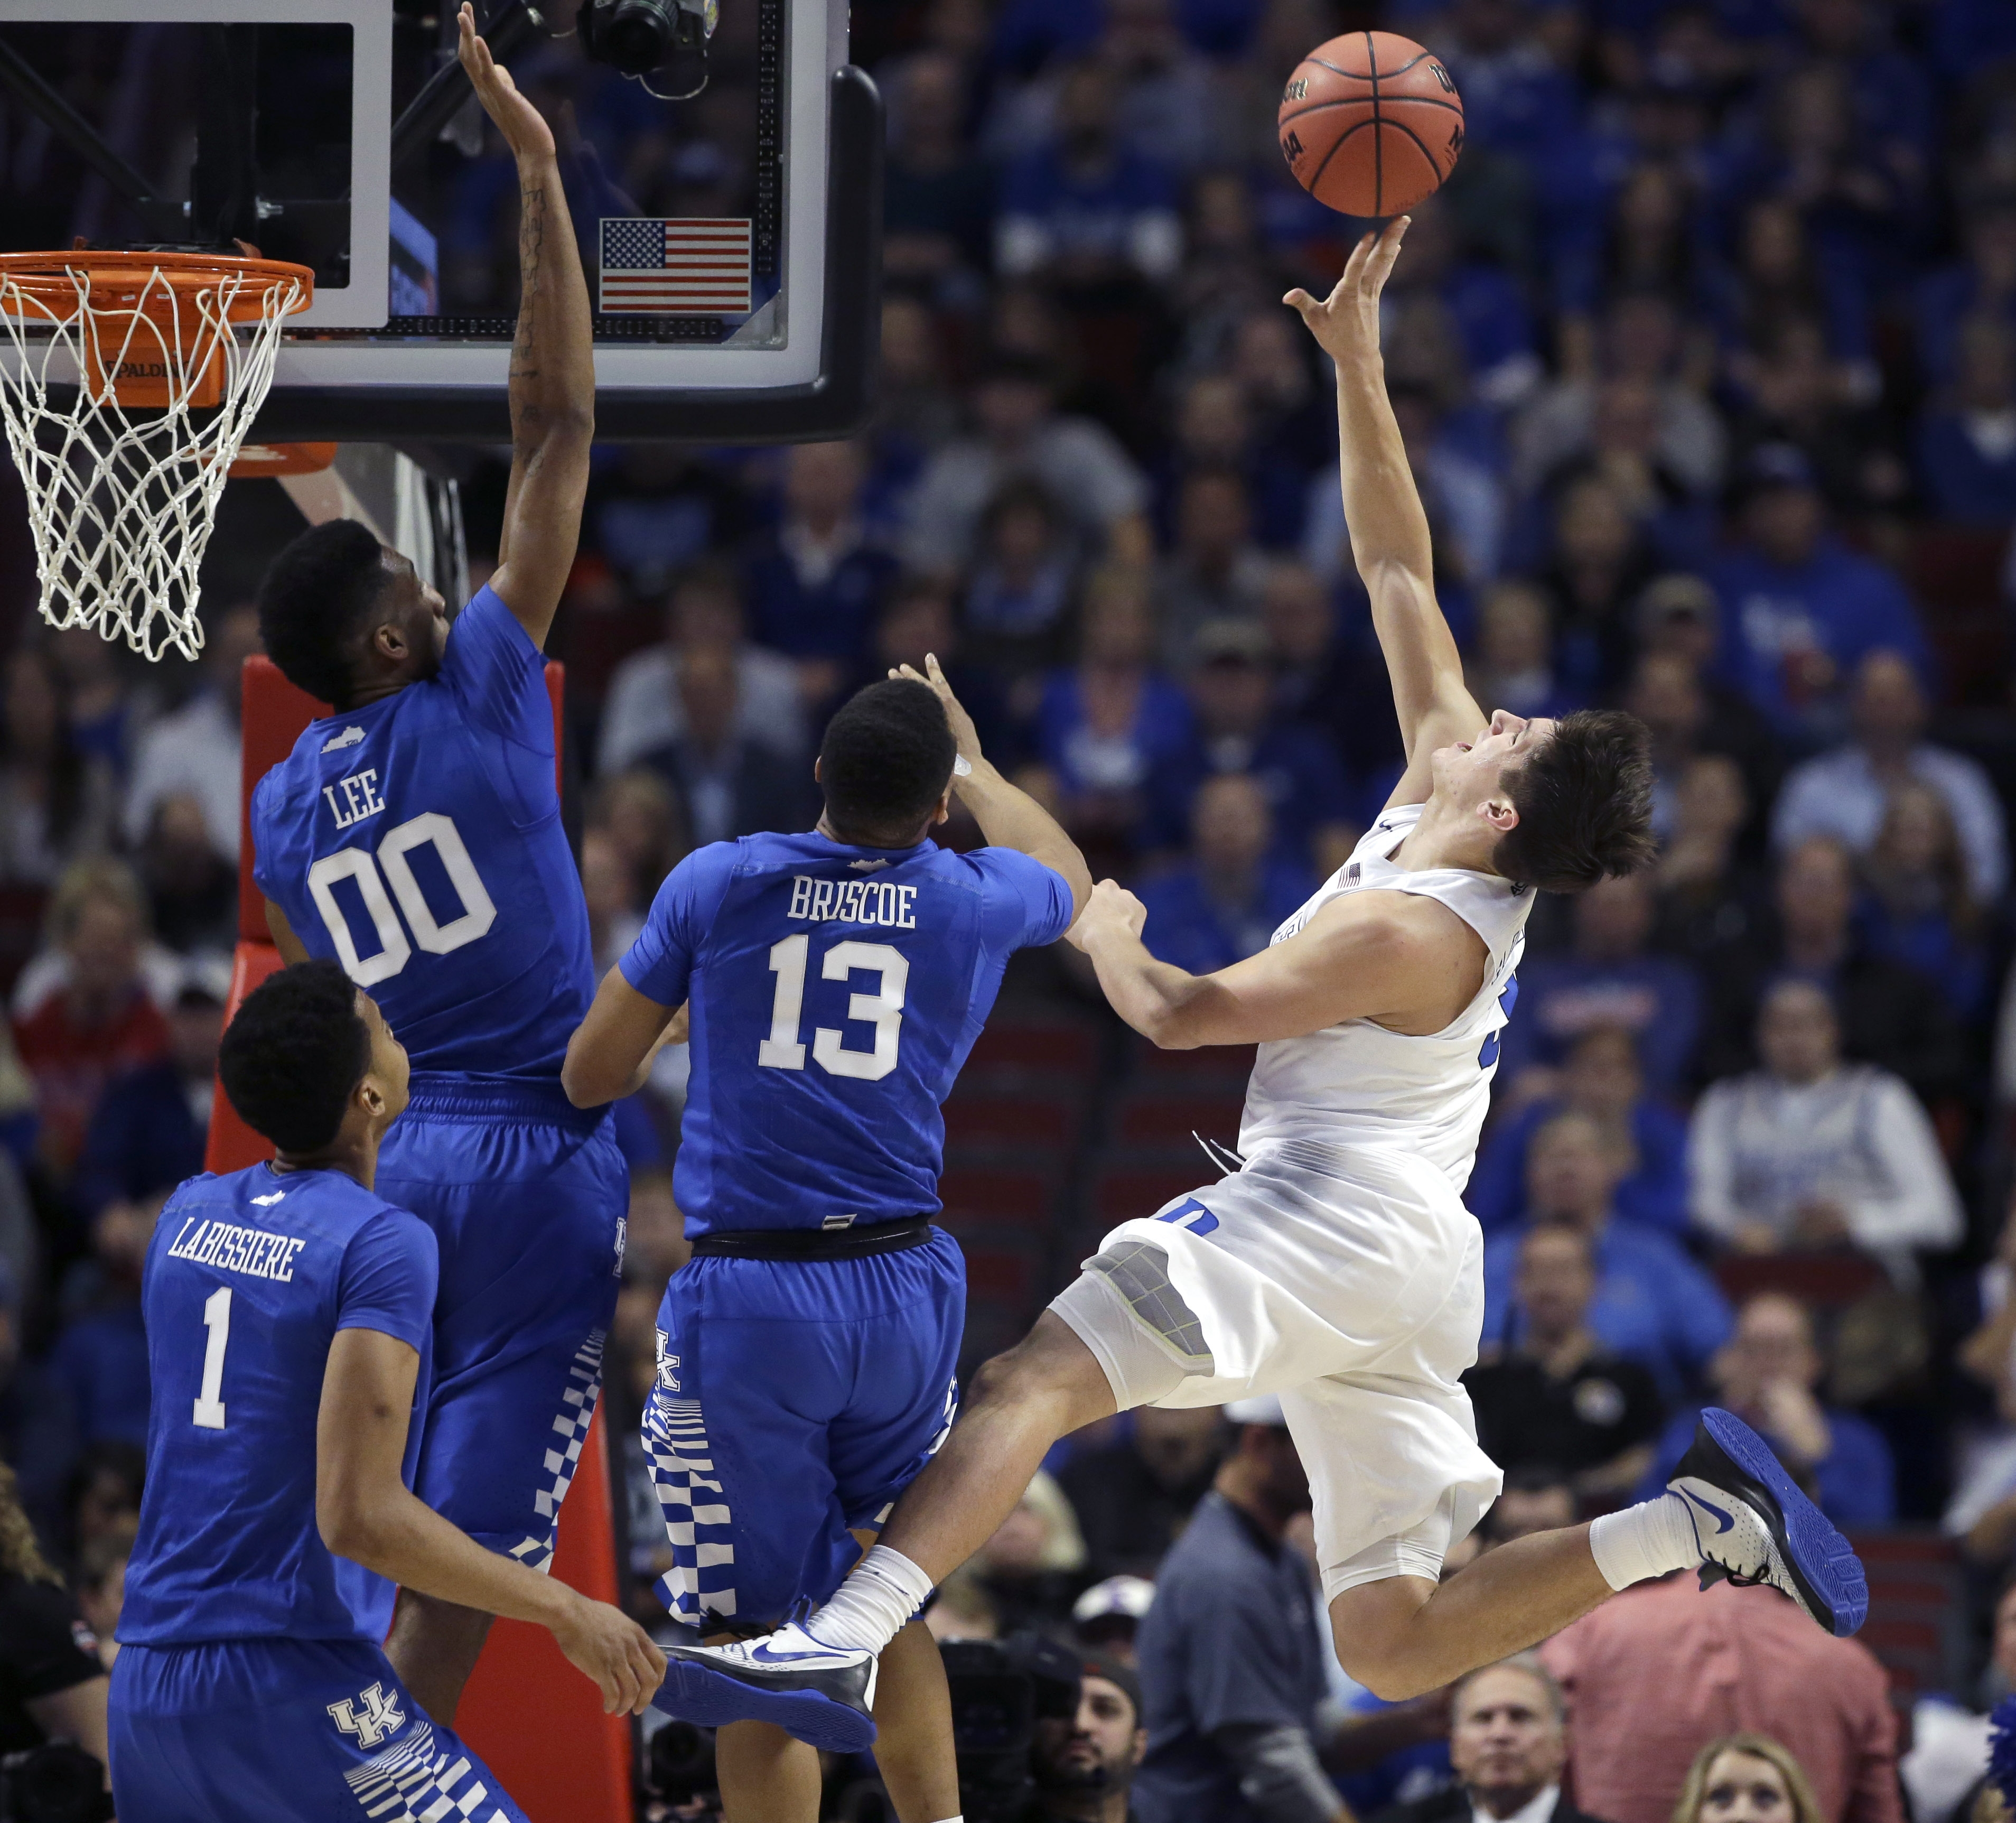 Duke guard Grayson Allen, left, shoots off balance over Kentucky forward Skal Labissiere (1) Marcus Lee (00) and Isaiah Briscoe, during the first half of an NCAA basketball game, Tuesday, Nov. 17, 2015, in Chicago. (AP Photo/Nam Y. Huh)